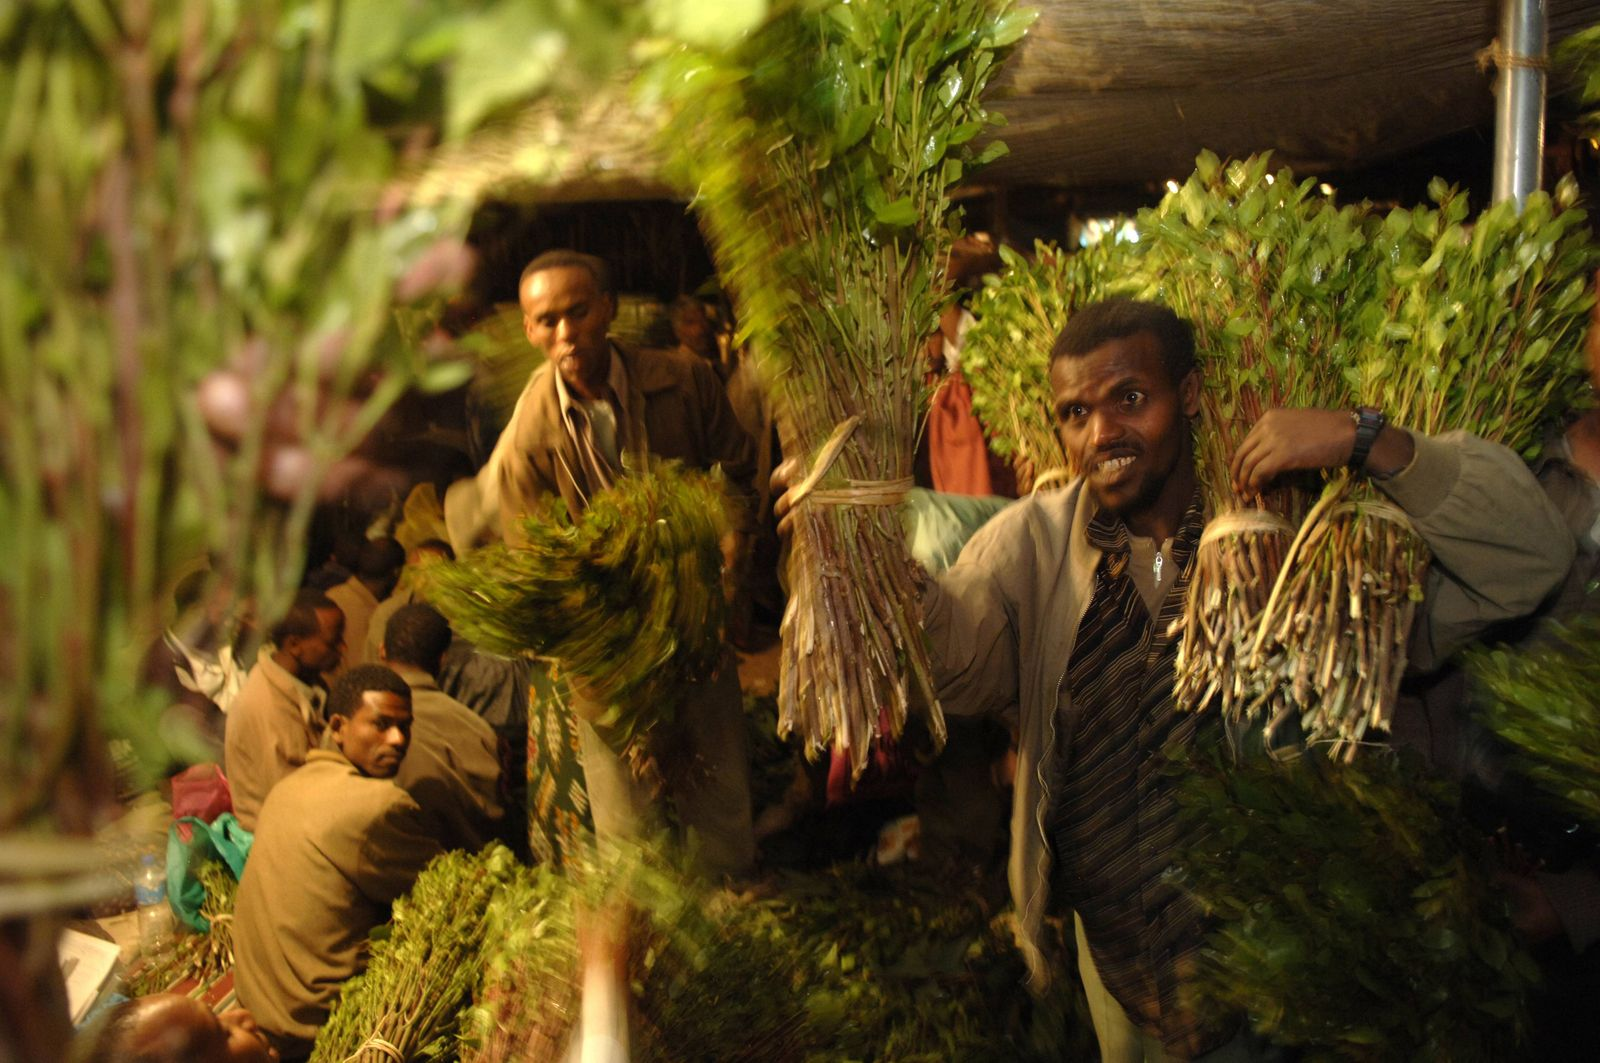 Khat farmers outside Harar sell their harvest of khat leaves picked daily to be sold to Ethiopian